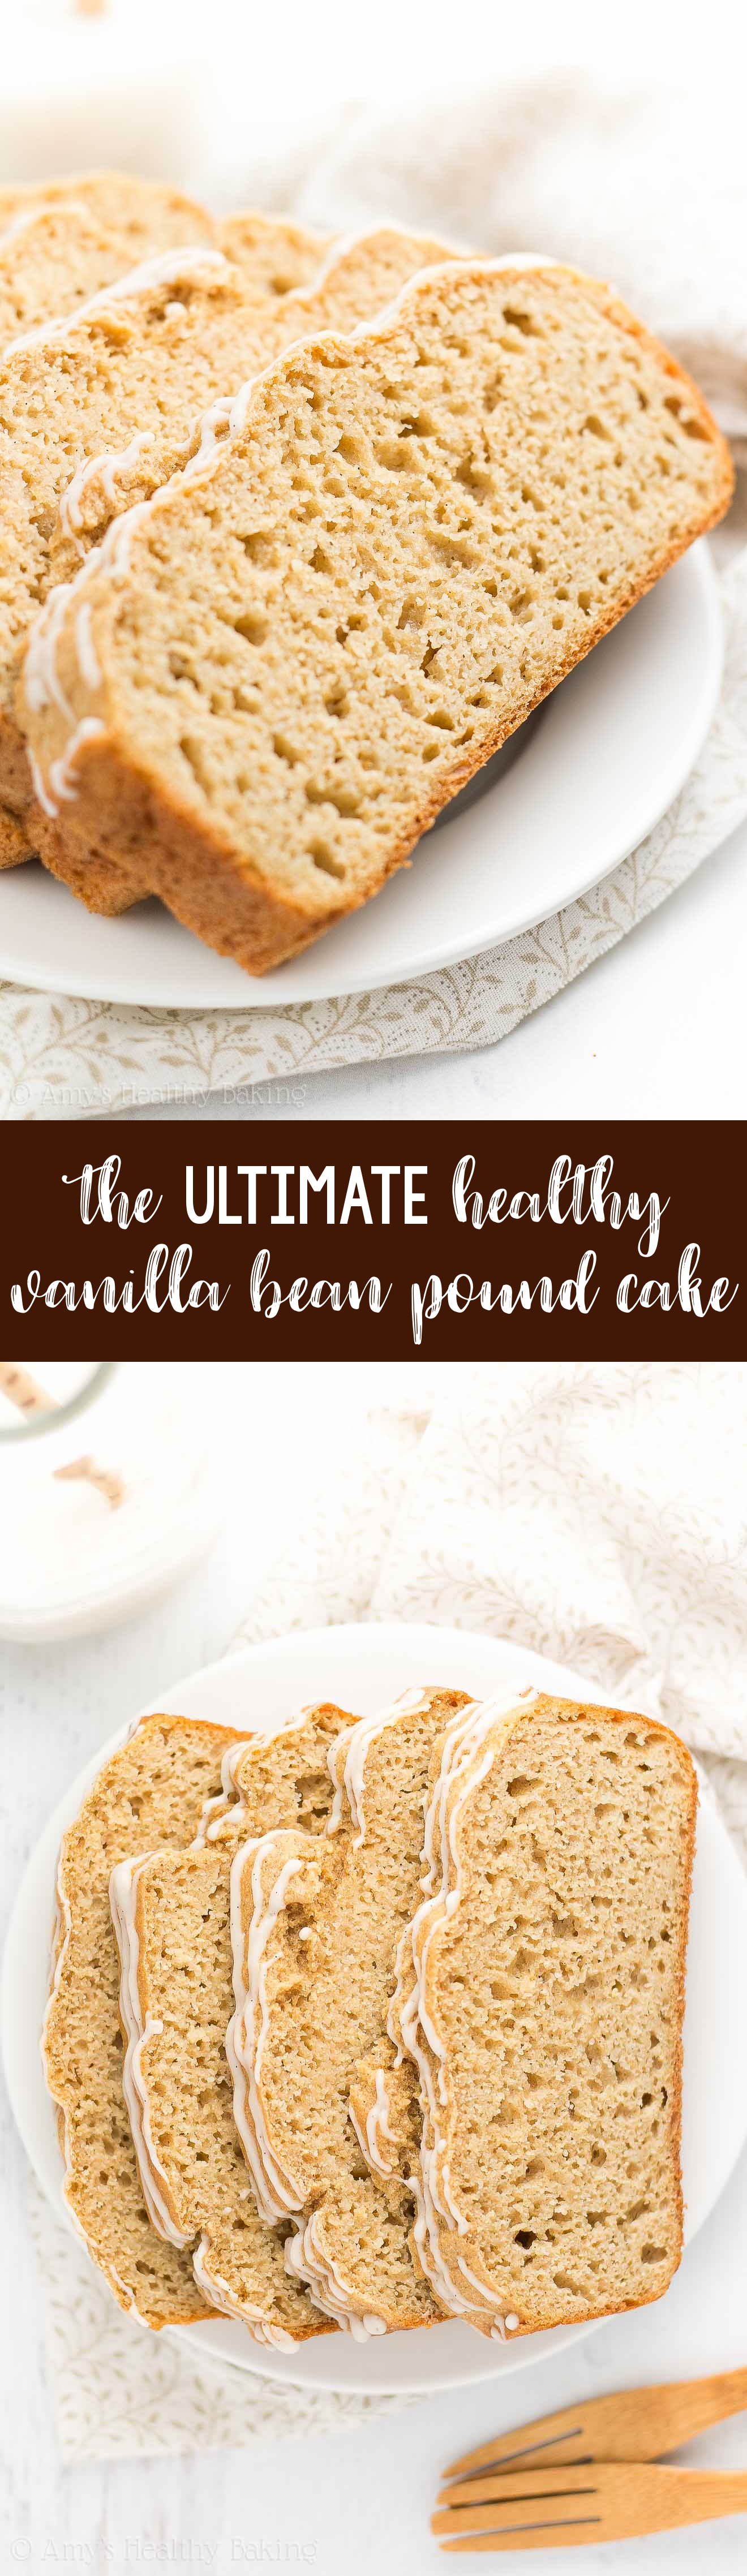 The ULTIMATE Healthy Vanilla Bean Pound Cake slices, topped with vanilla bean glaze